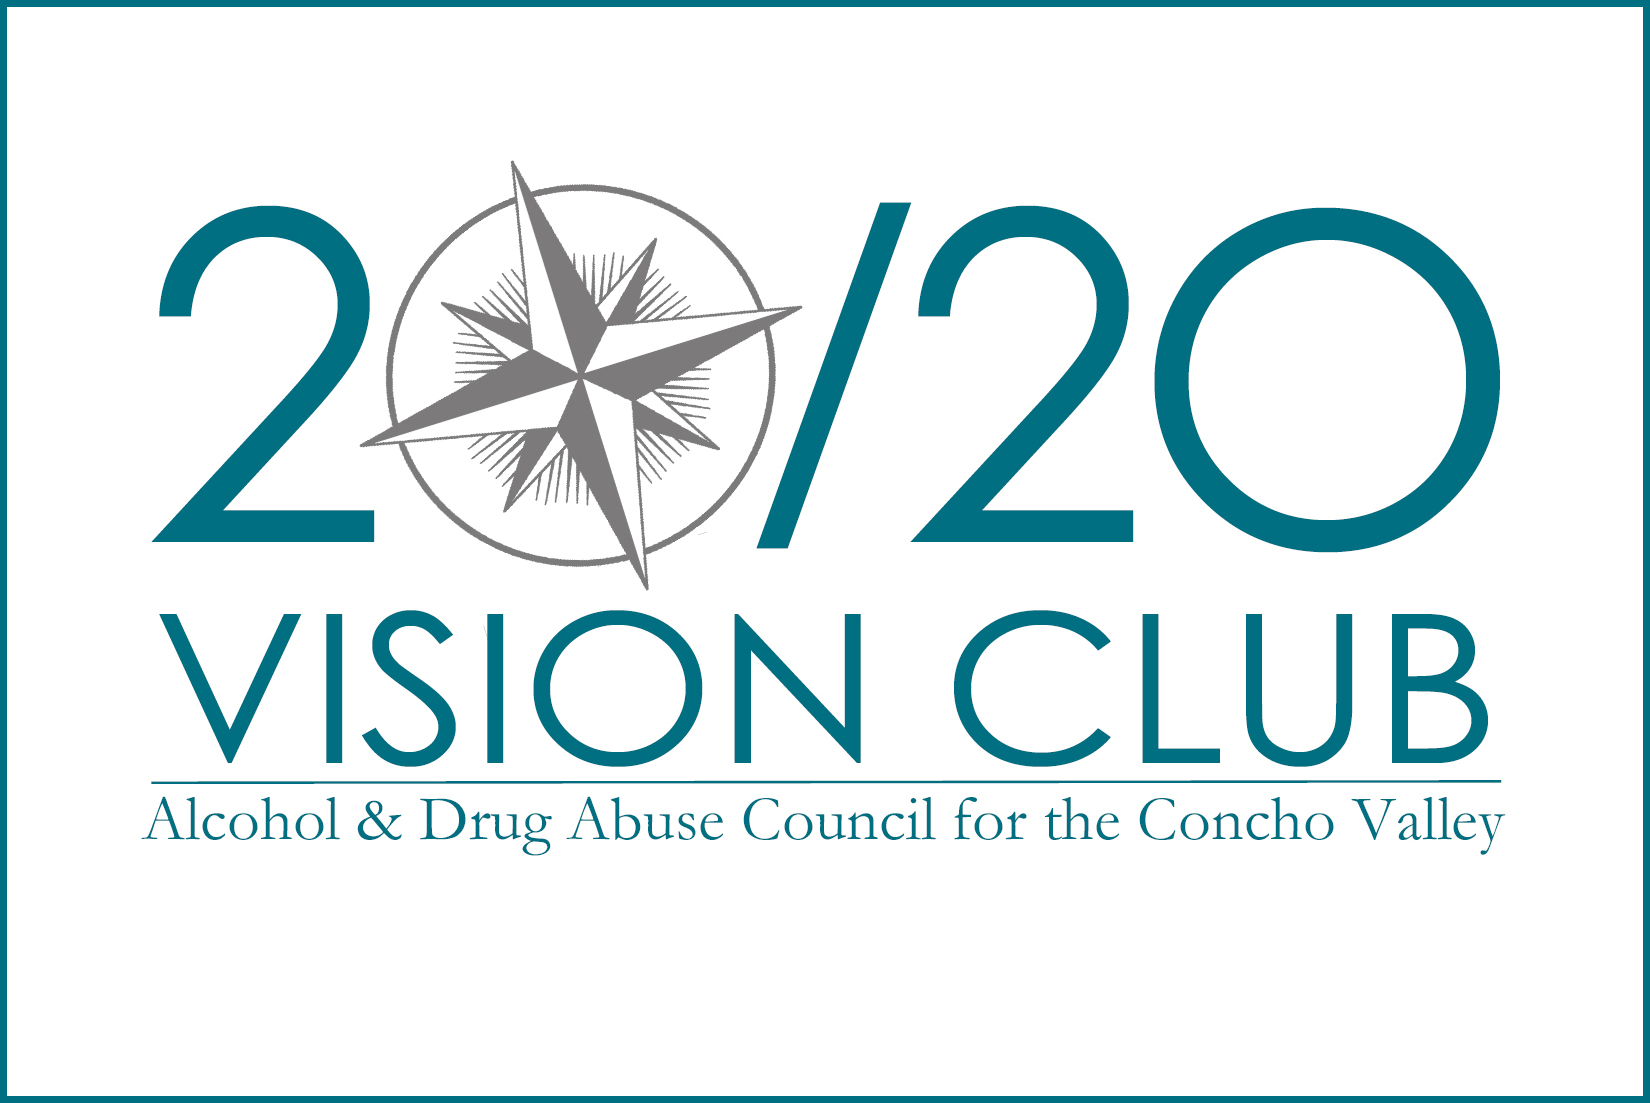 Join the Club!  ADACCV's 20/20 Vision Club